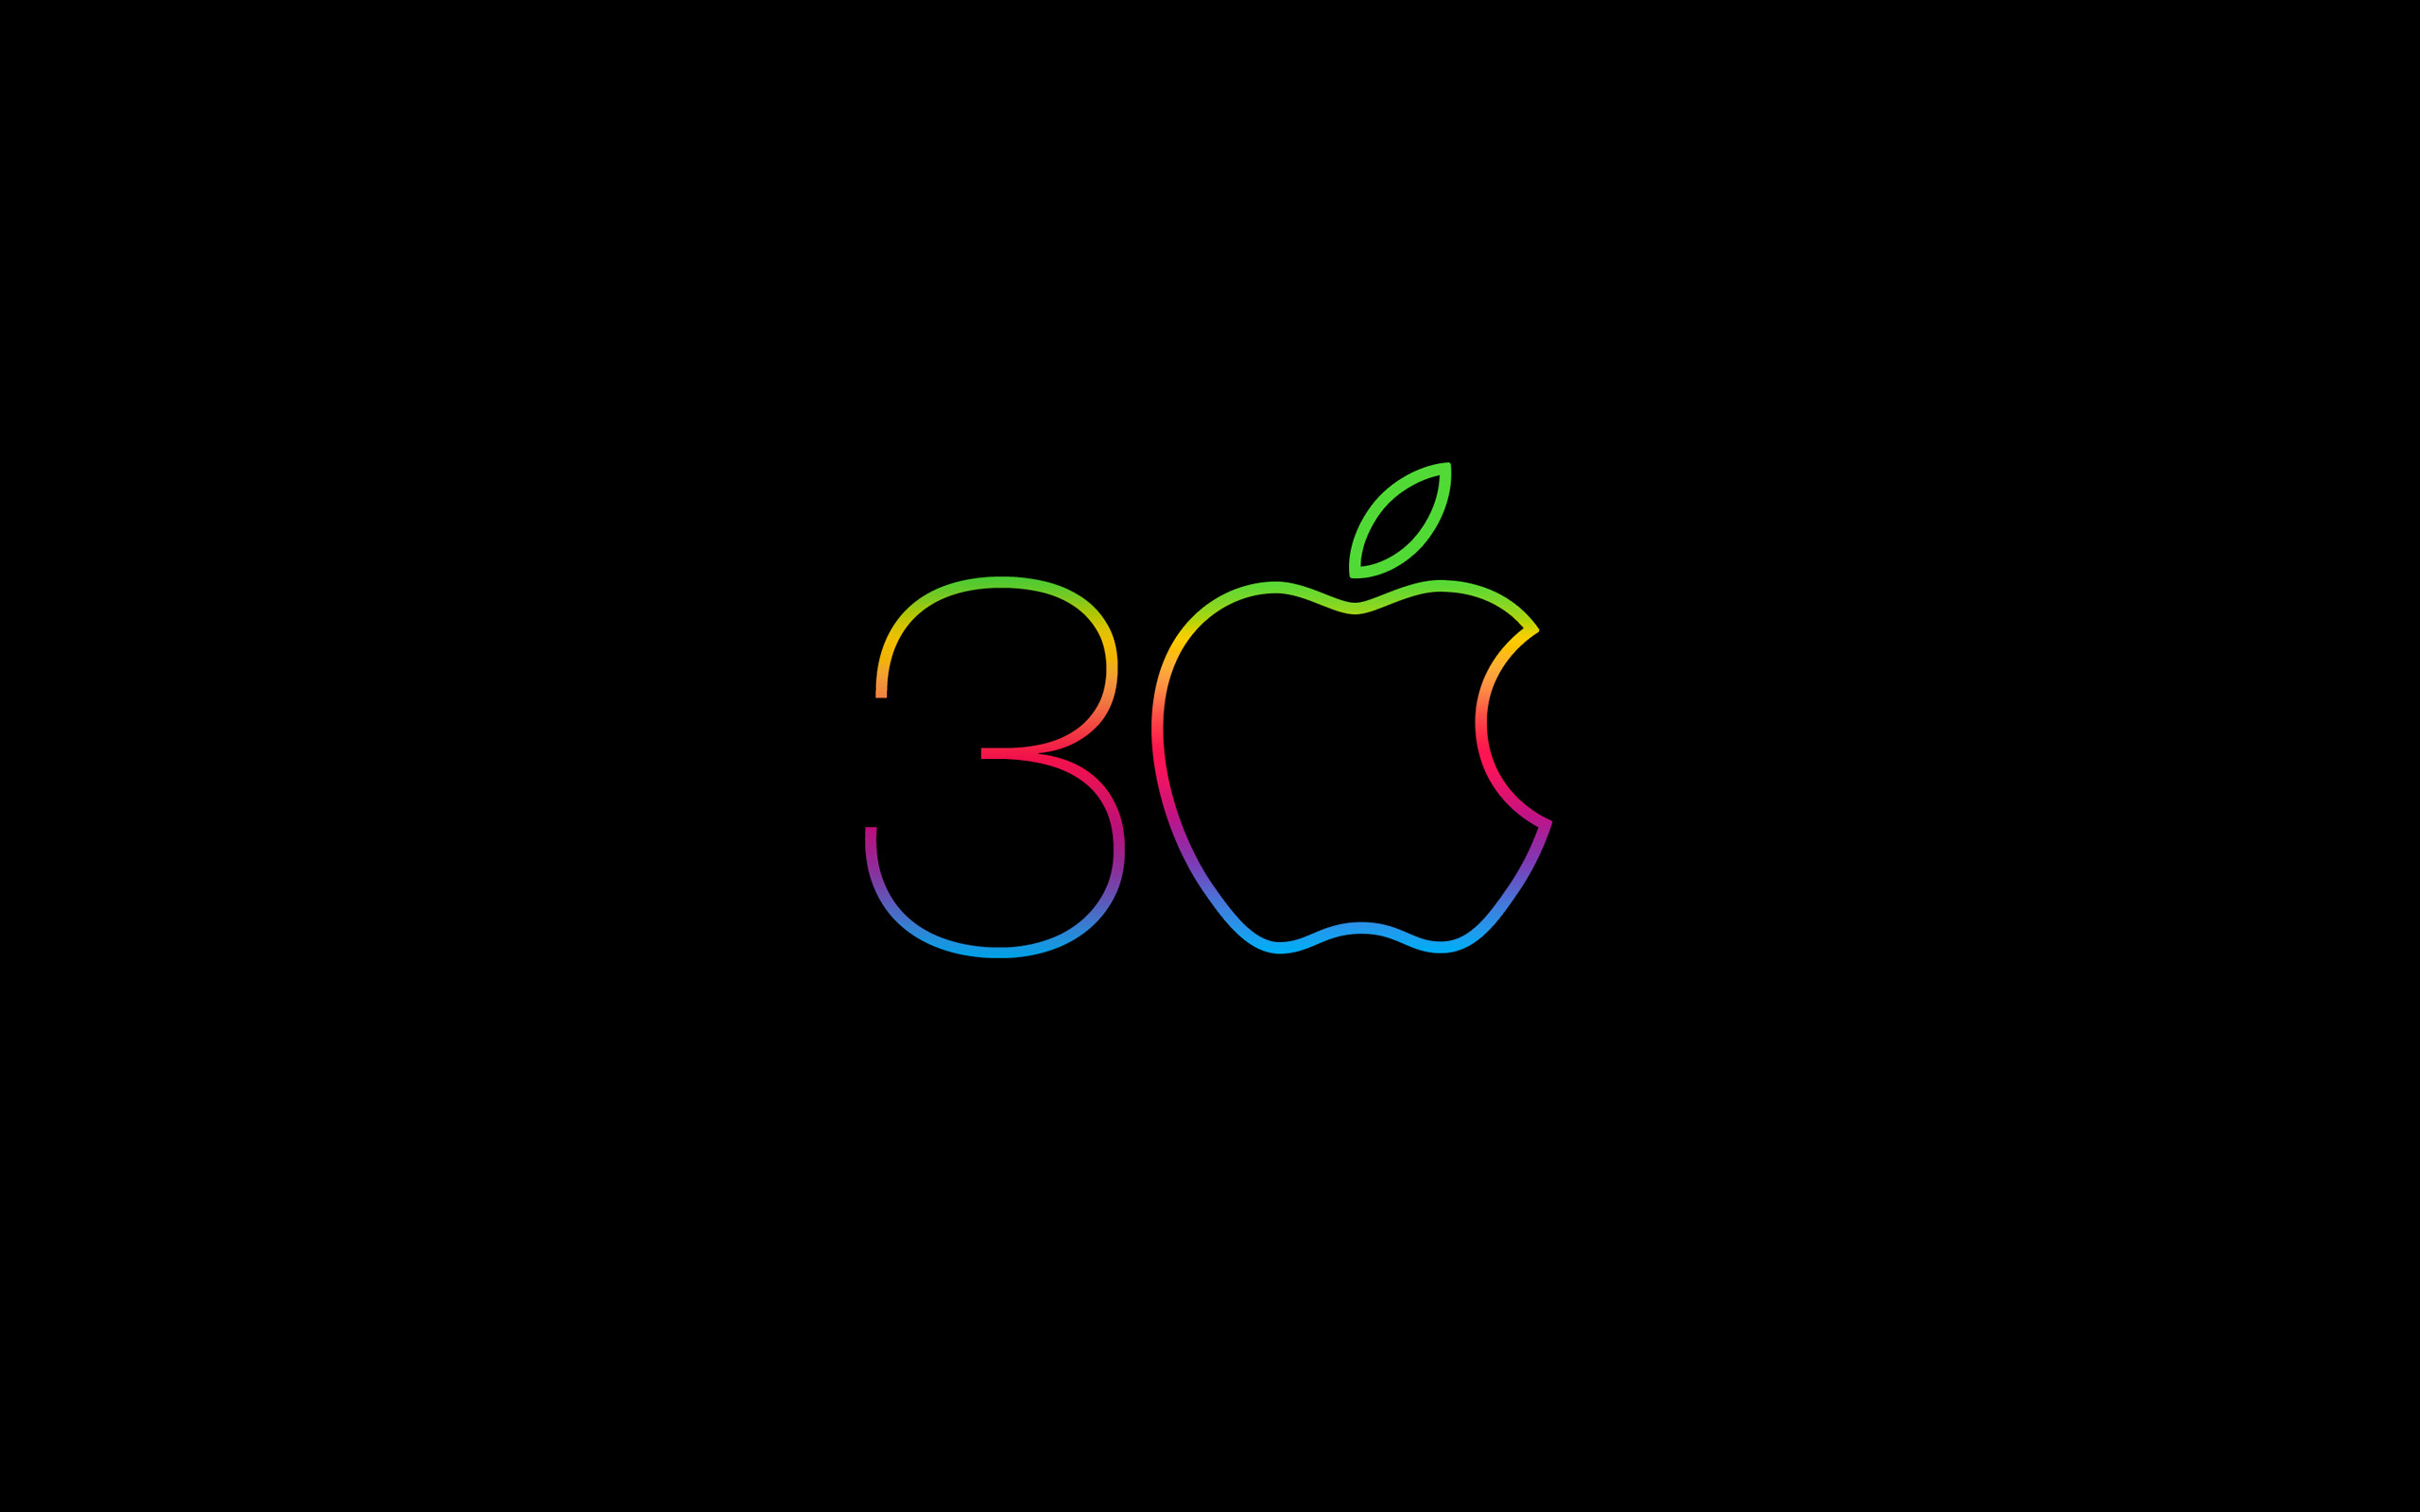 Res: 2560x1600, 30 years of Macintosh wallpapers (iPhone, iPad, Mac) on Behance